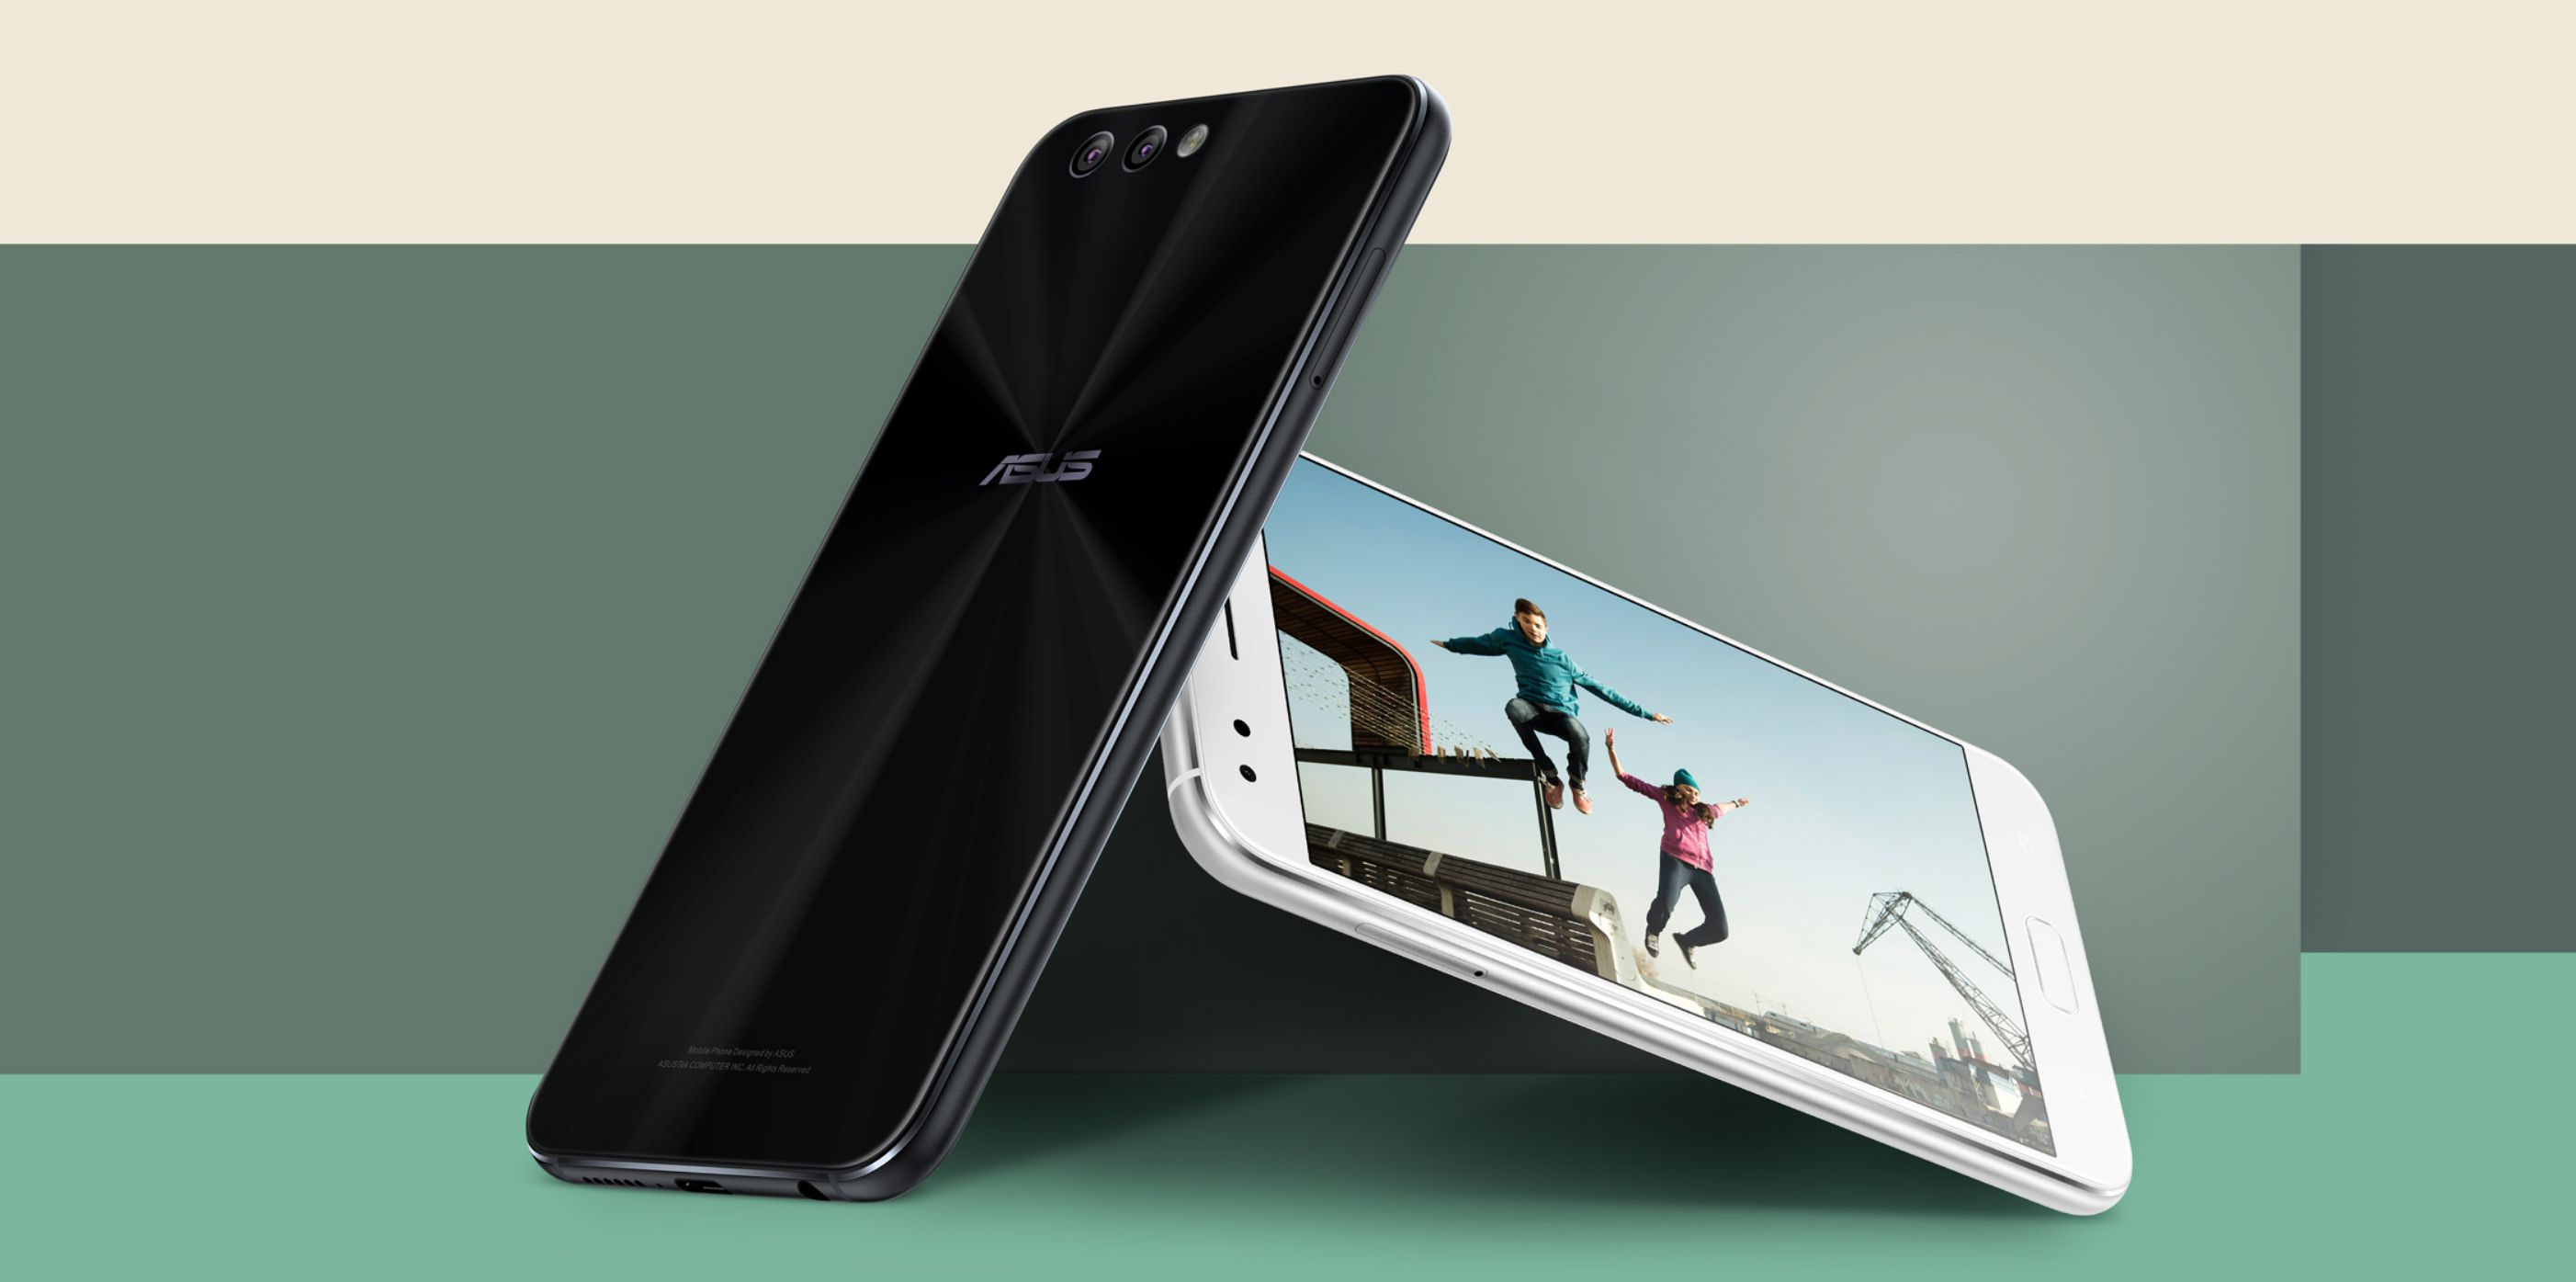 Asus ZenFone 4 in black, front and back view